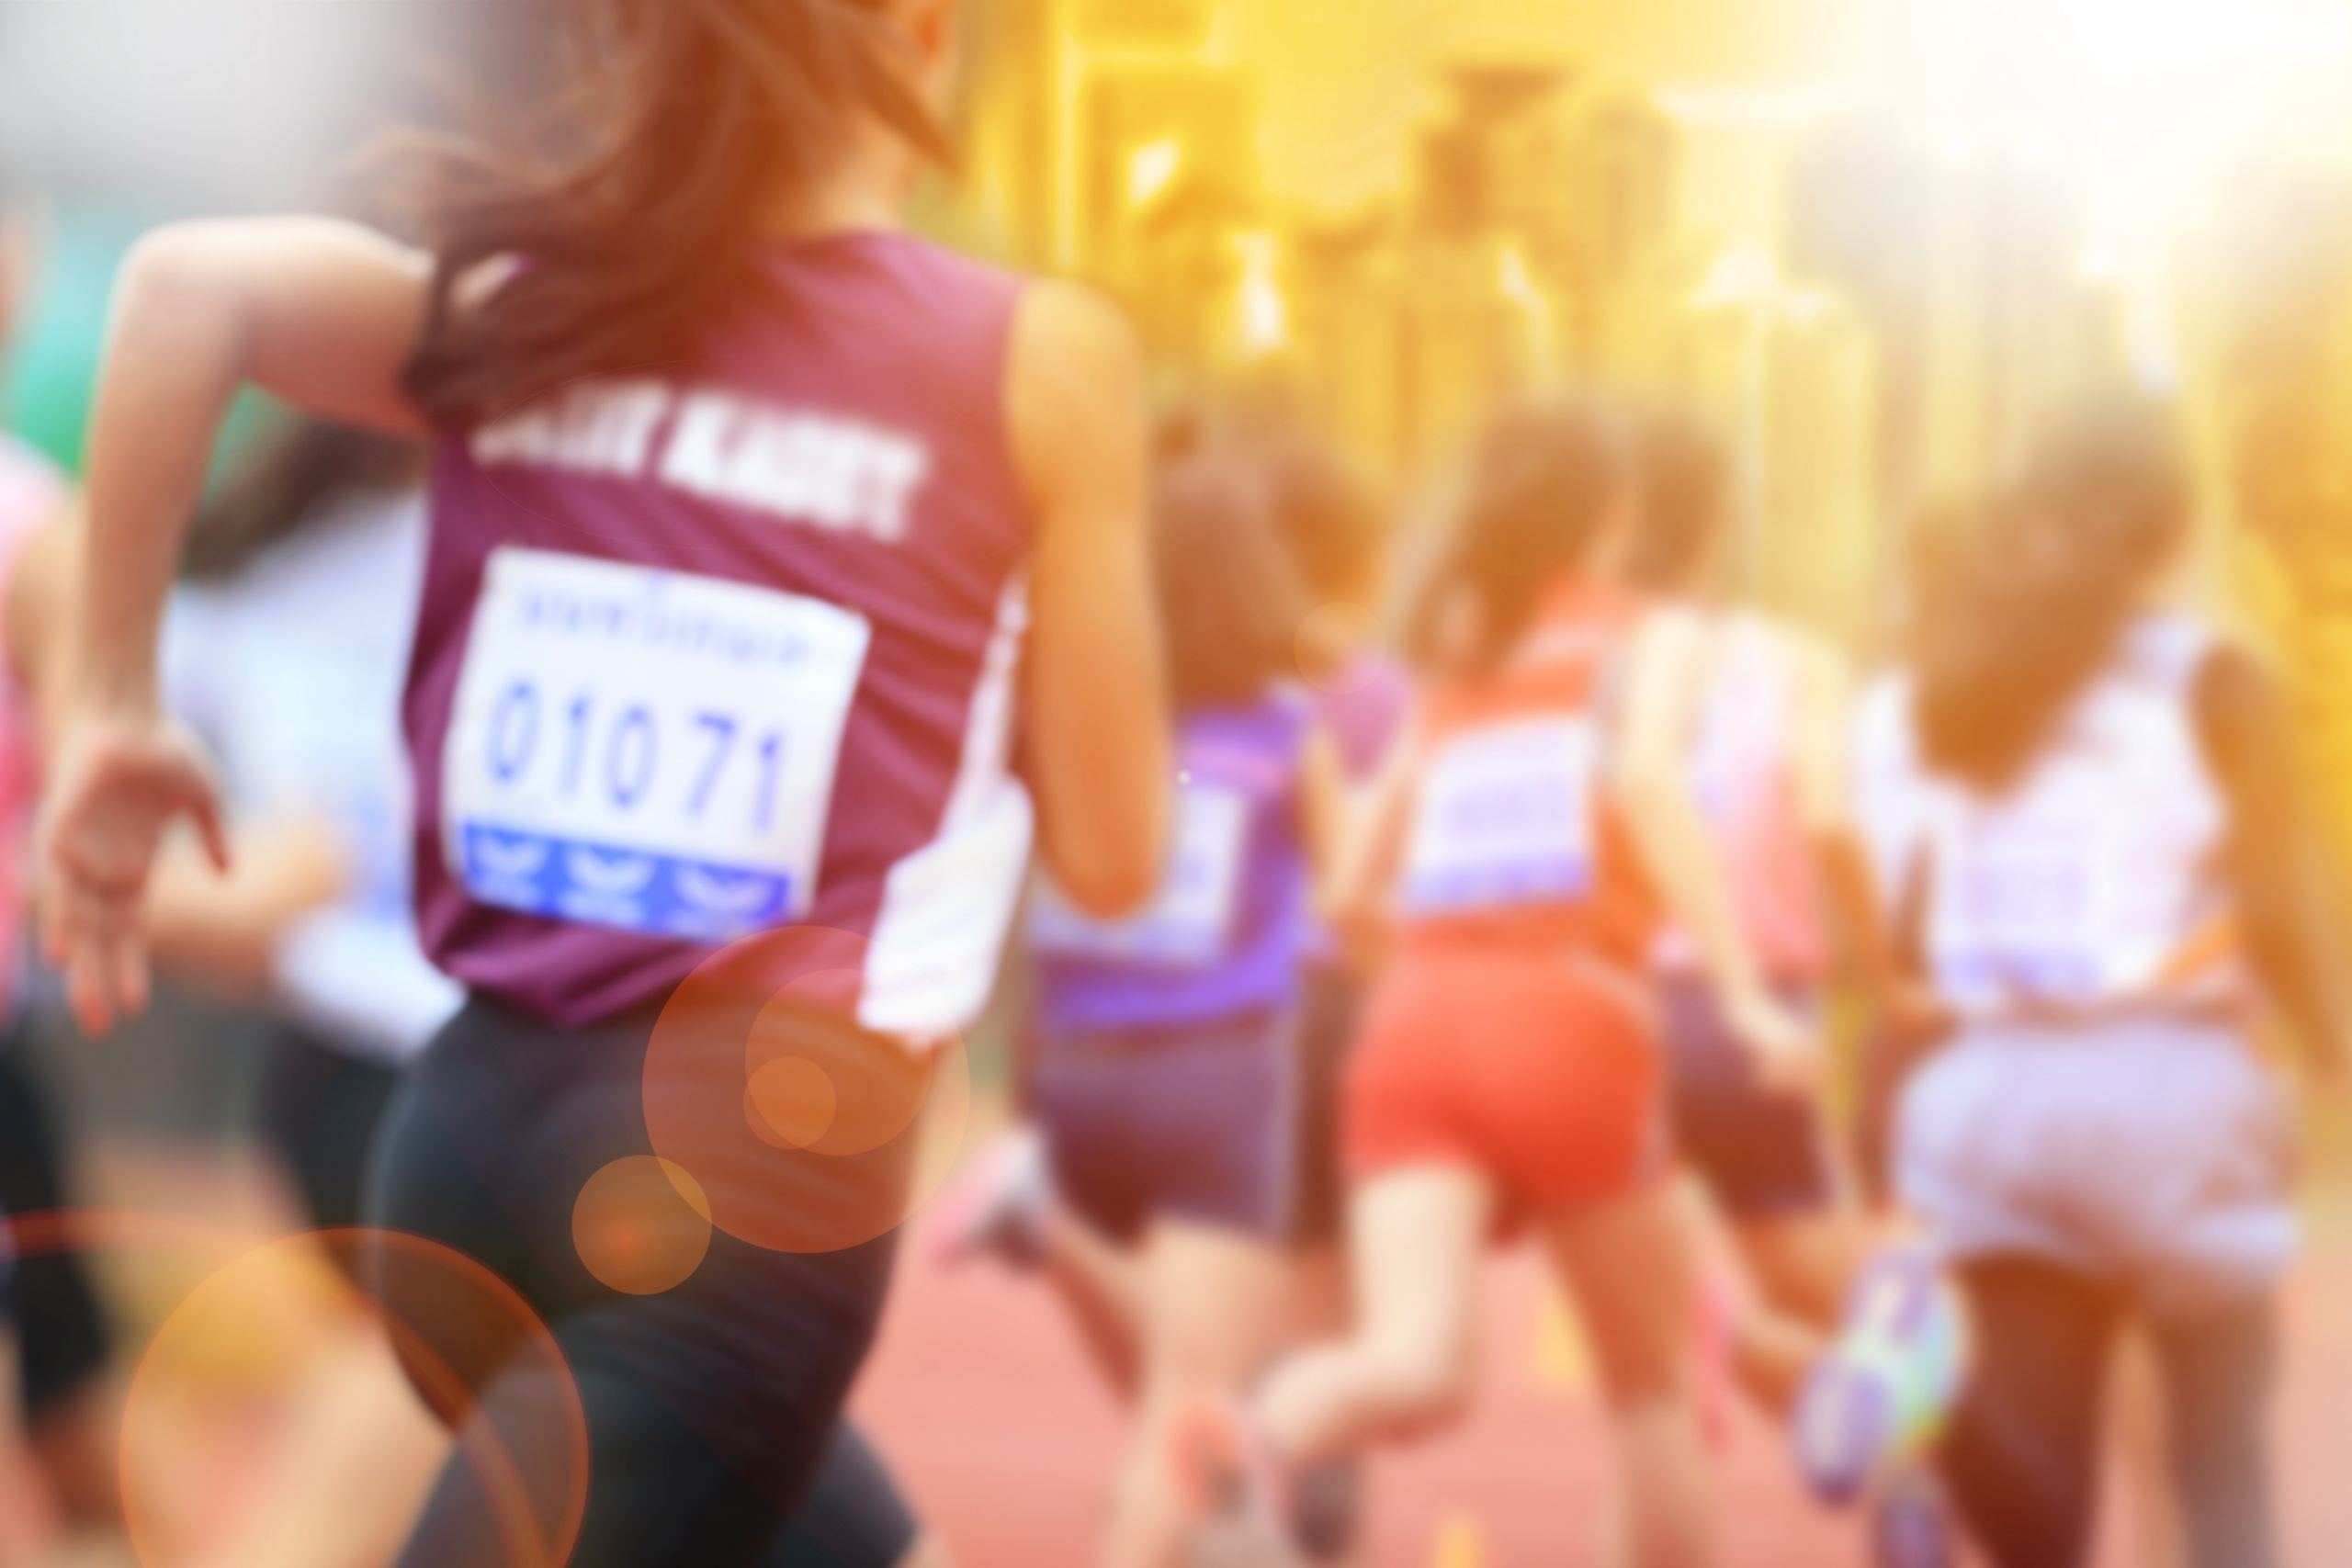 Blurred image of women marathon racing in the city with lans flare.; Shutterstock ID 556077157; Purchase Order: Informed Choice Fact Sheet; Job: ; Client/Licensee: ; Other: